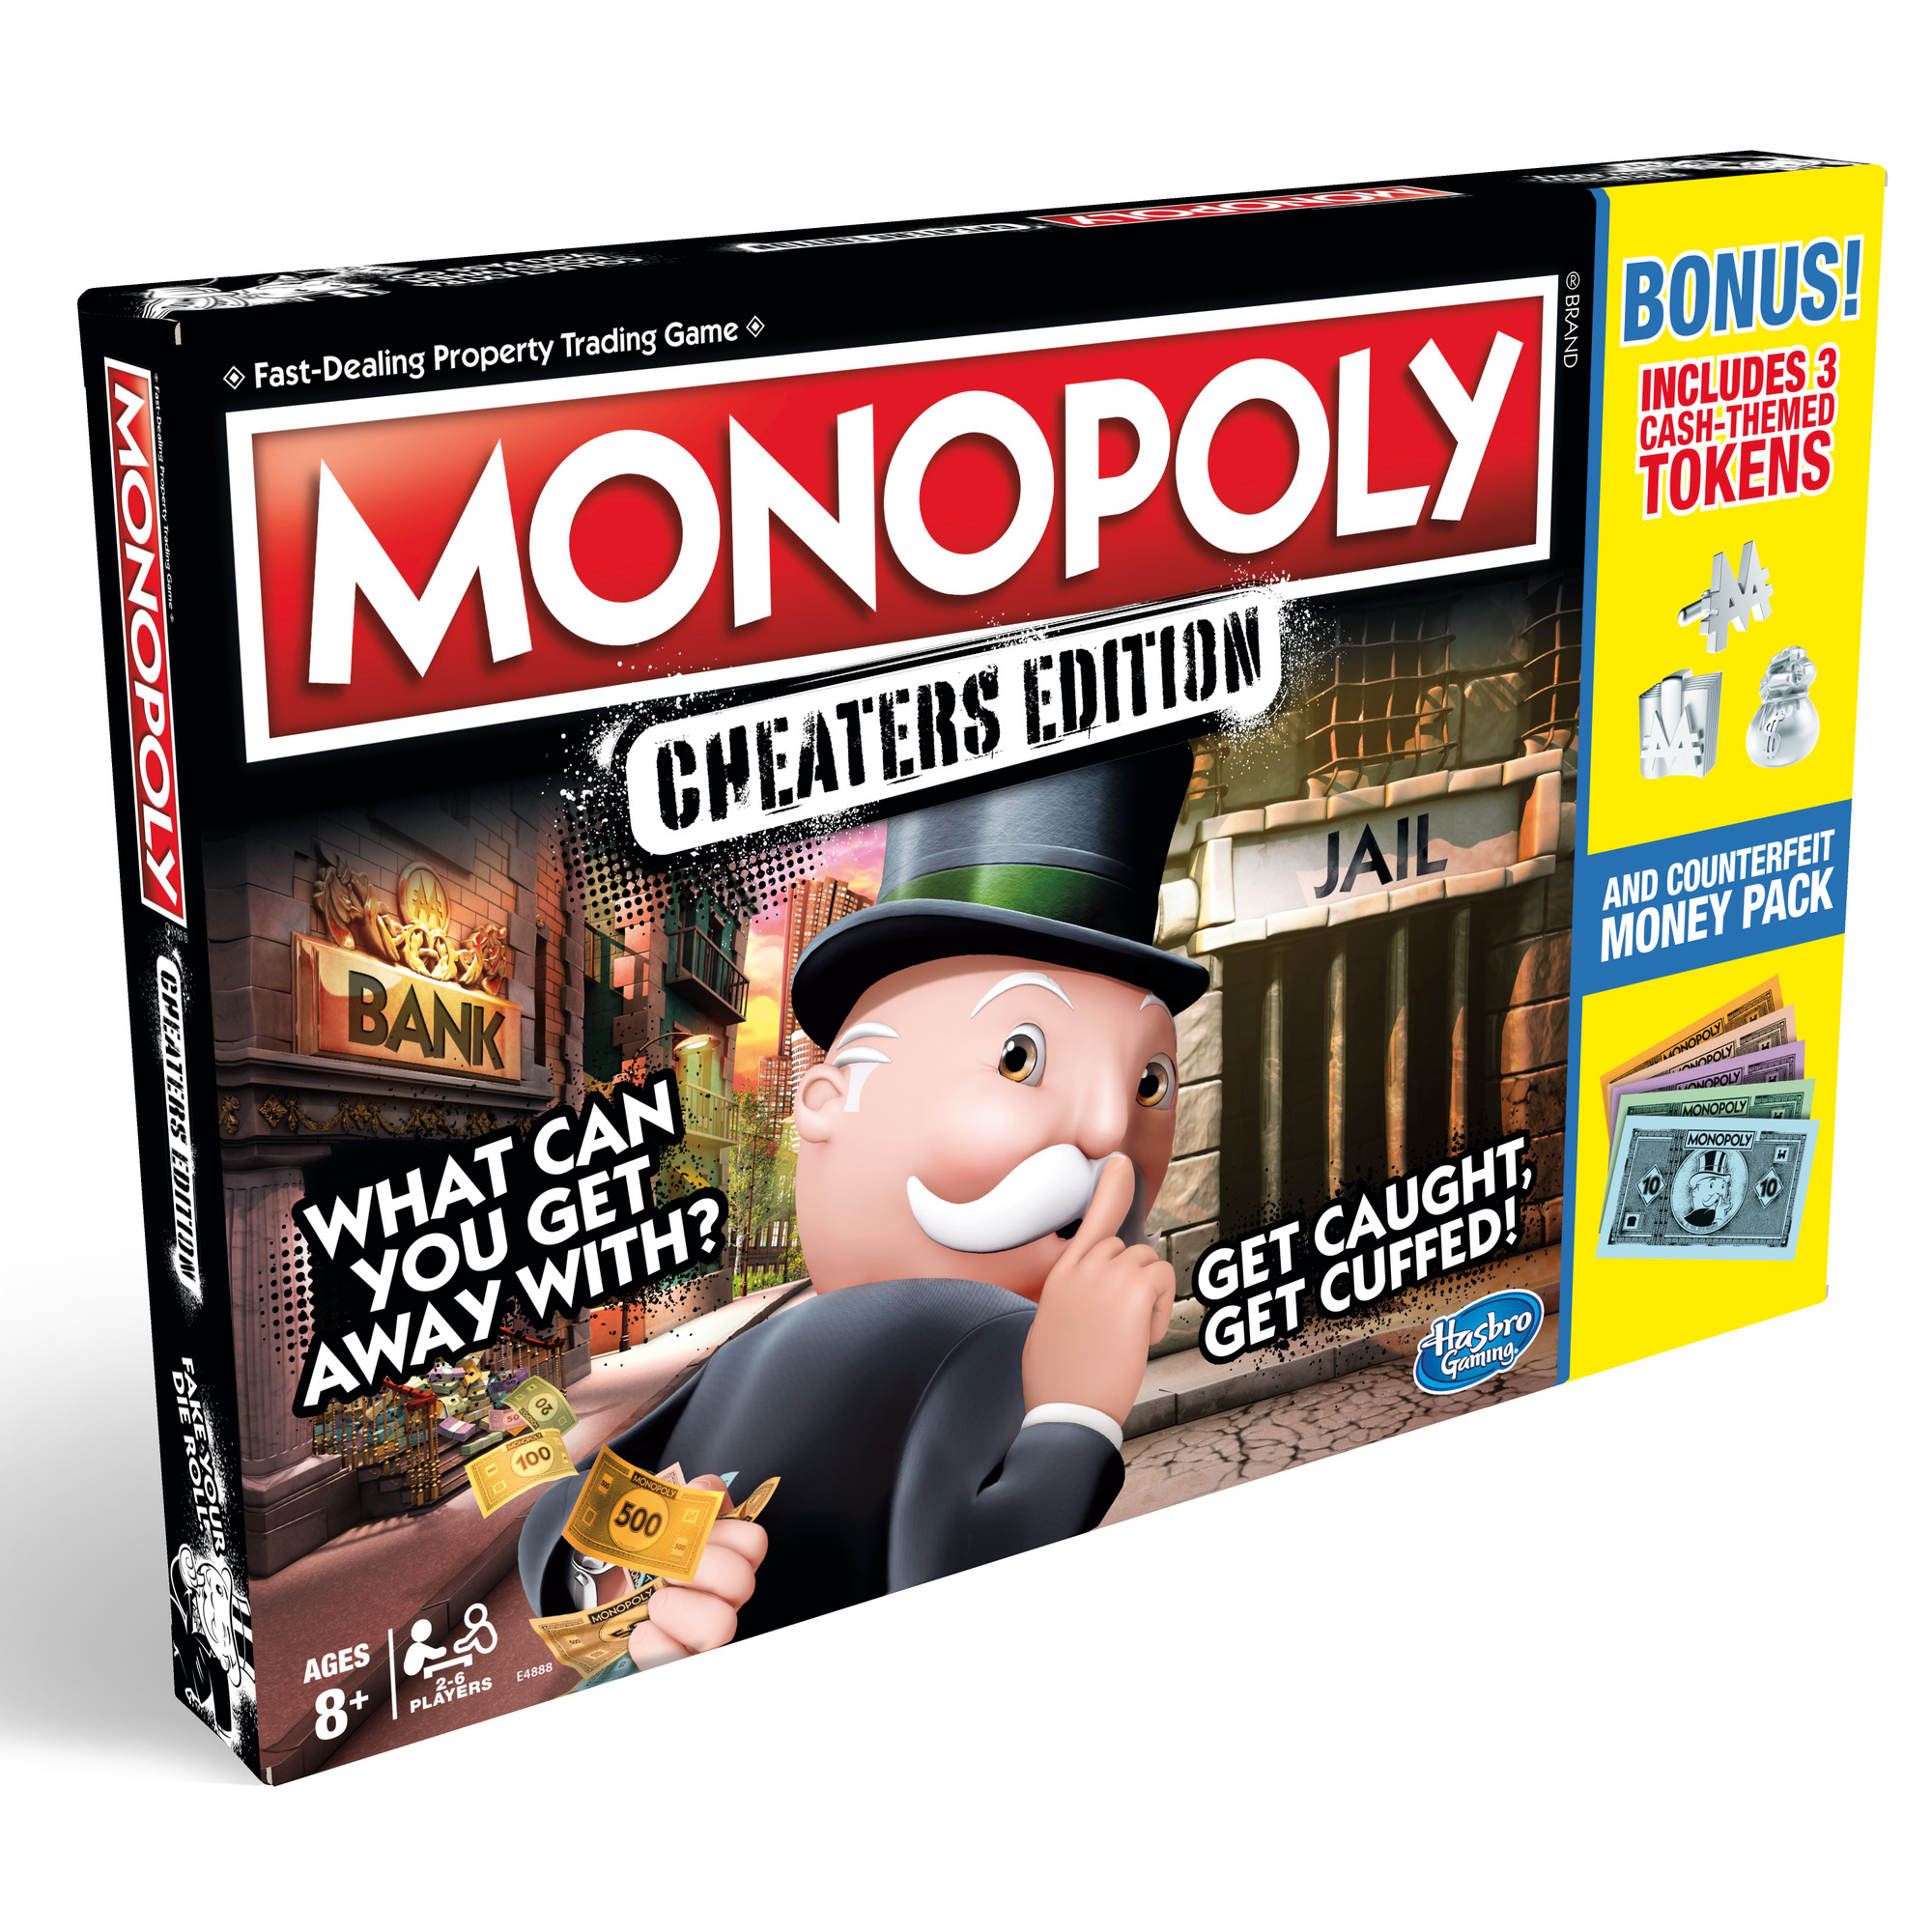 monopoly cheaters edition how many players